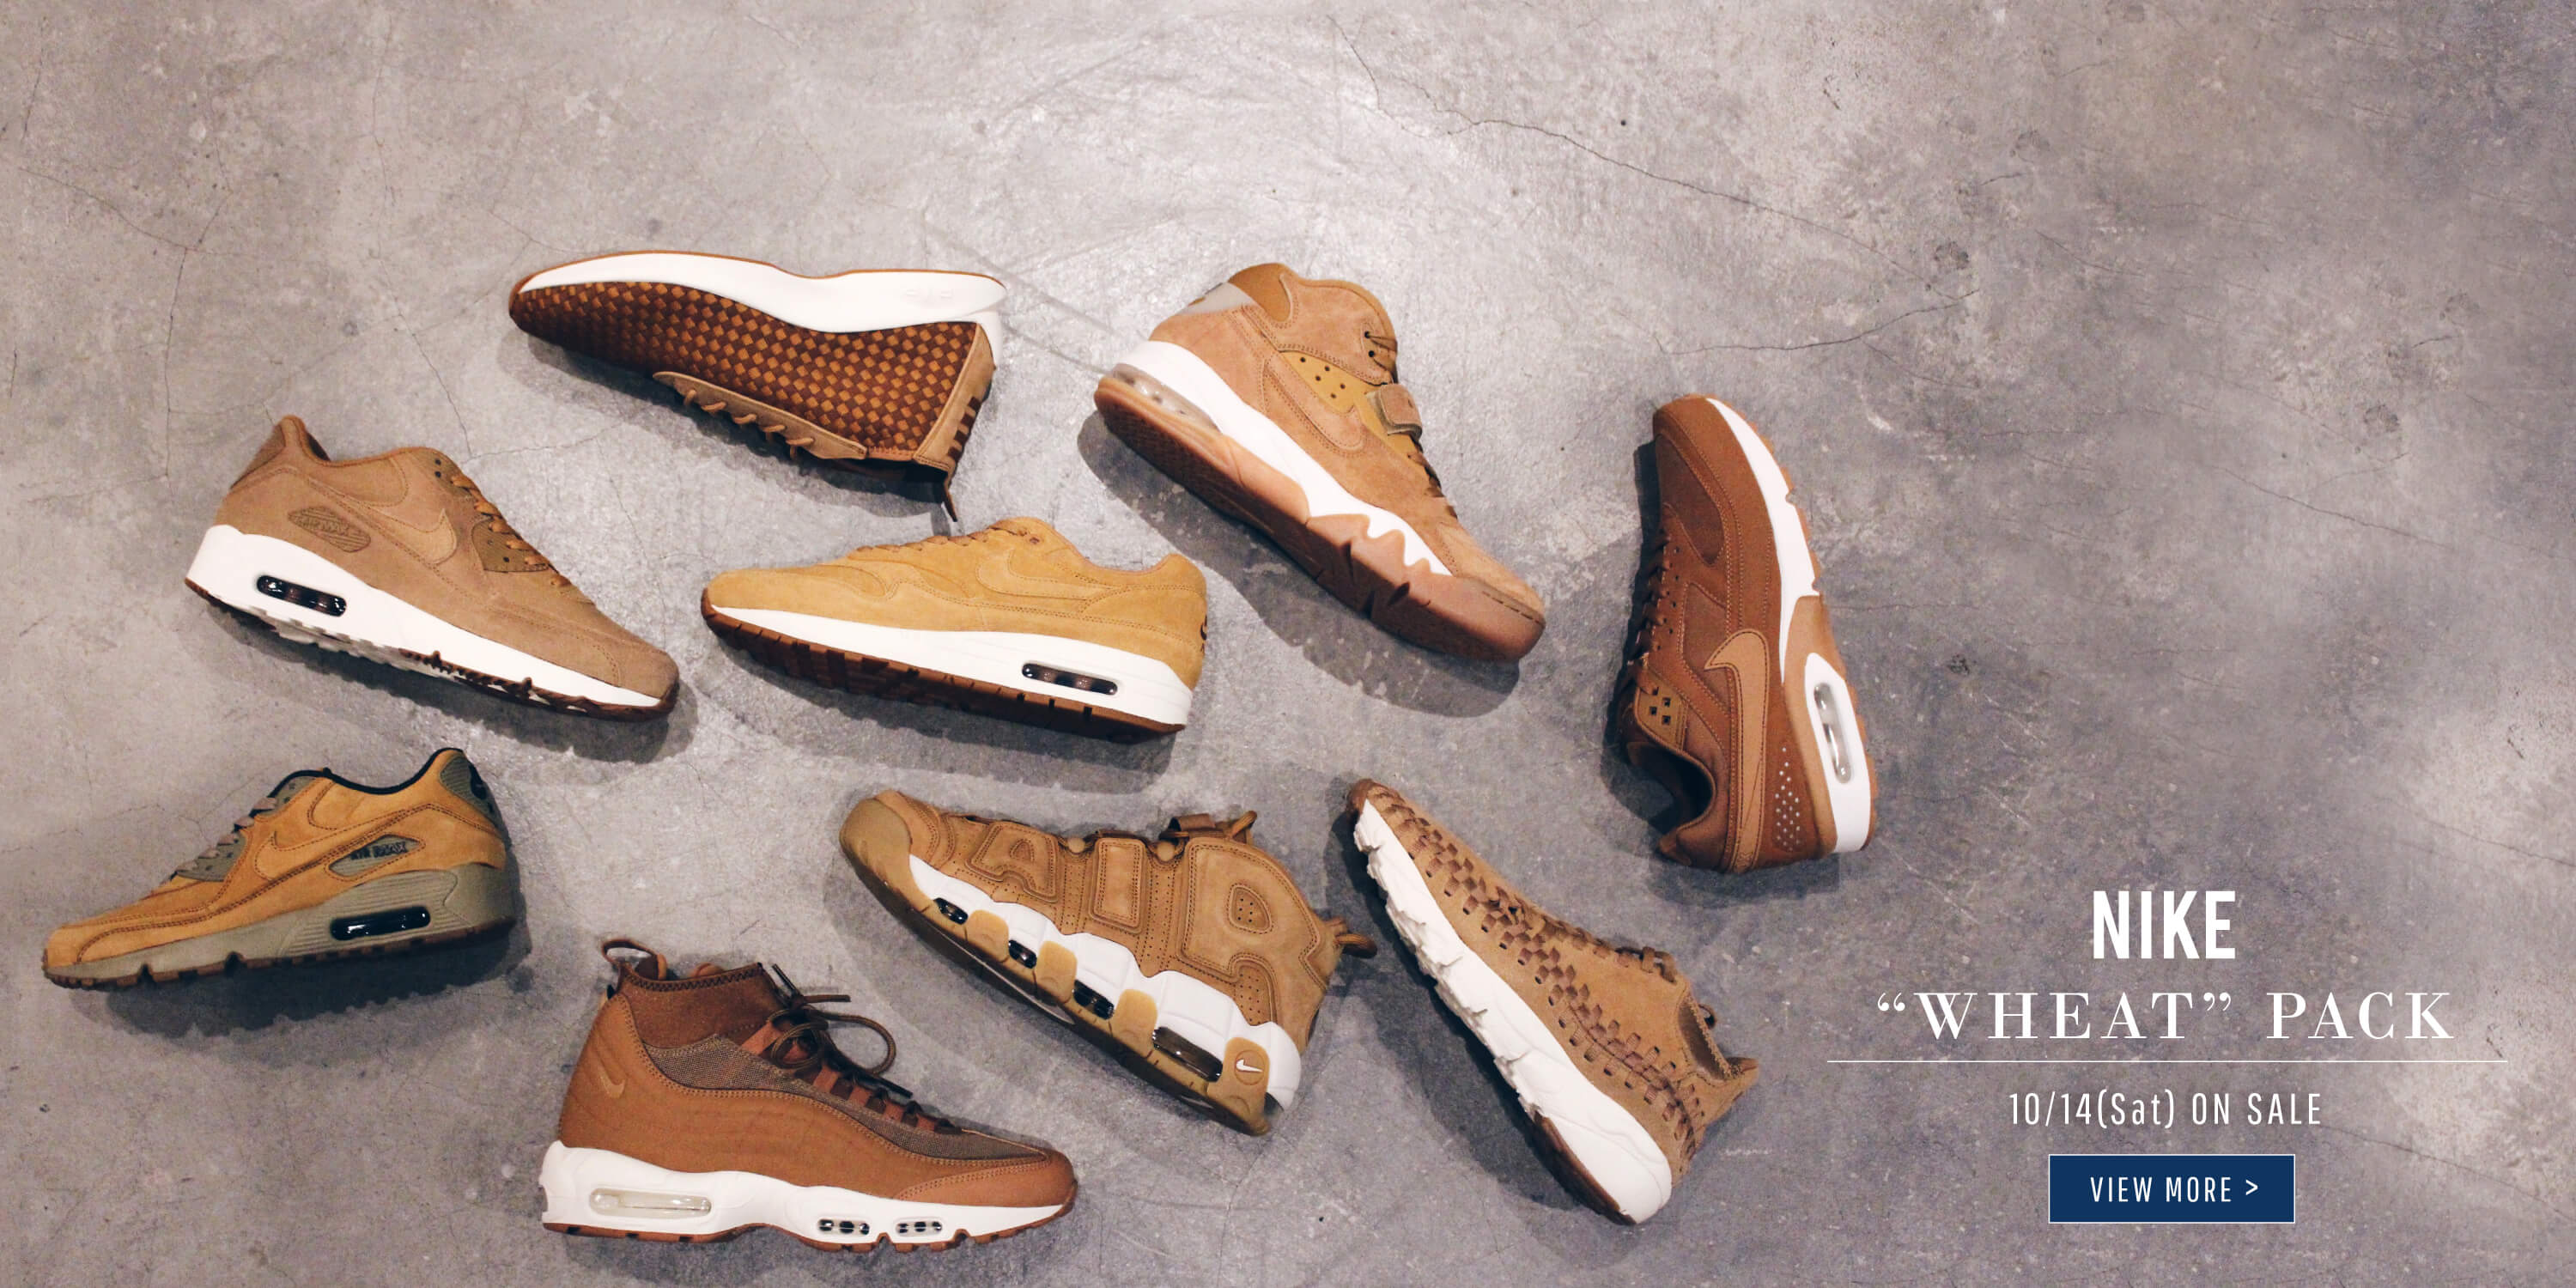 WHEAT PACK